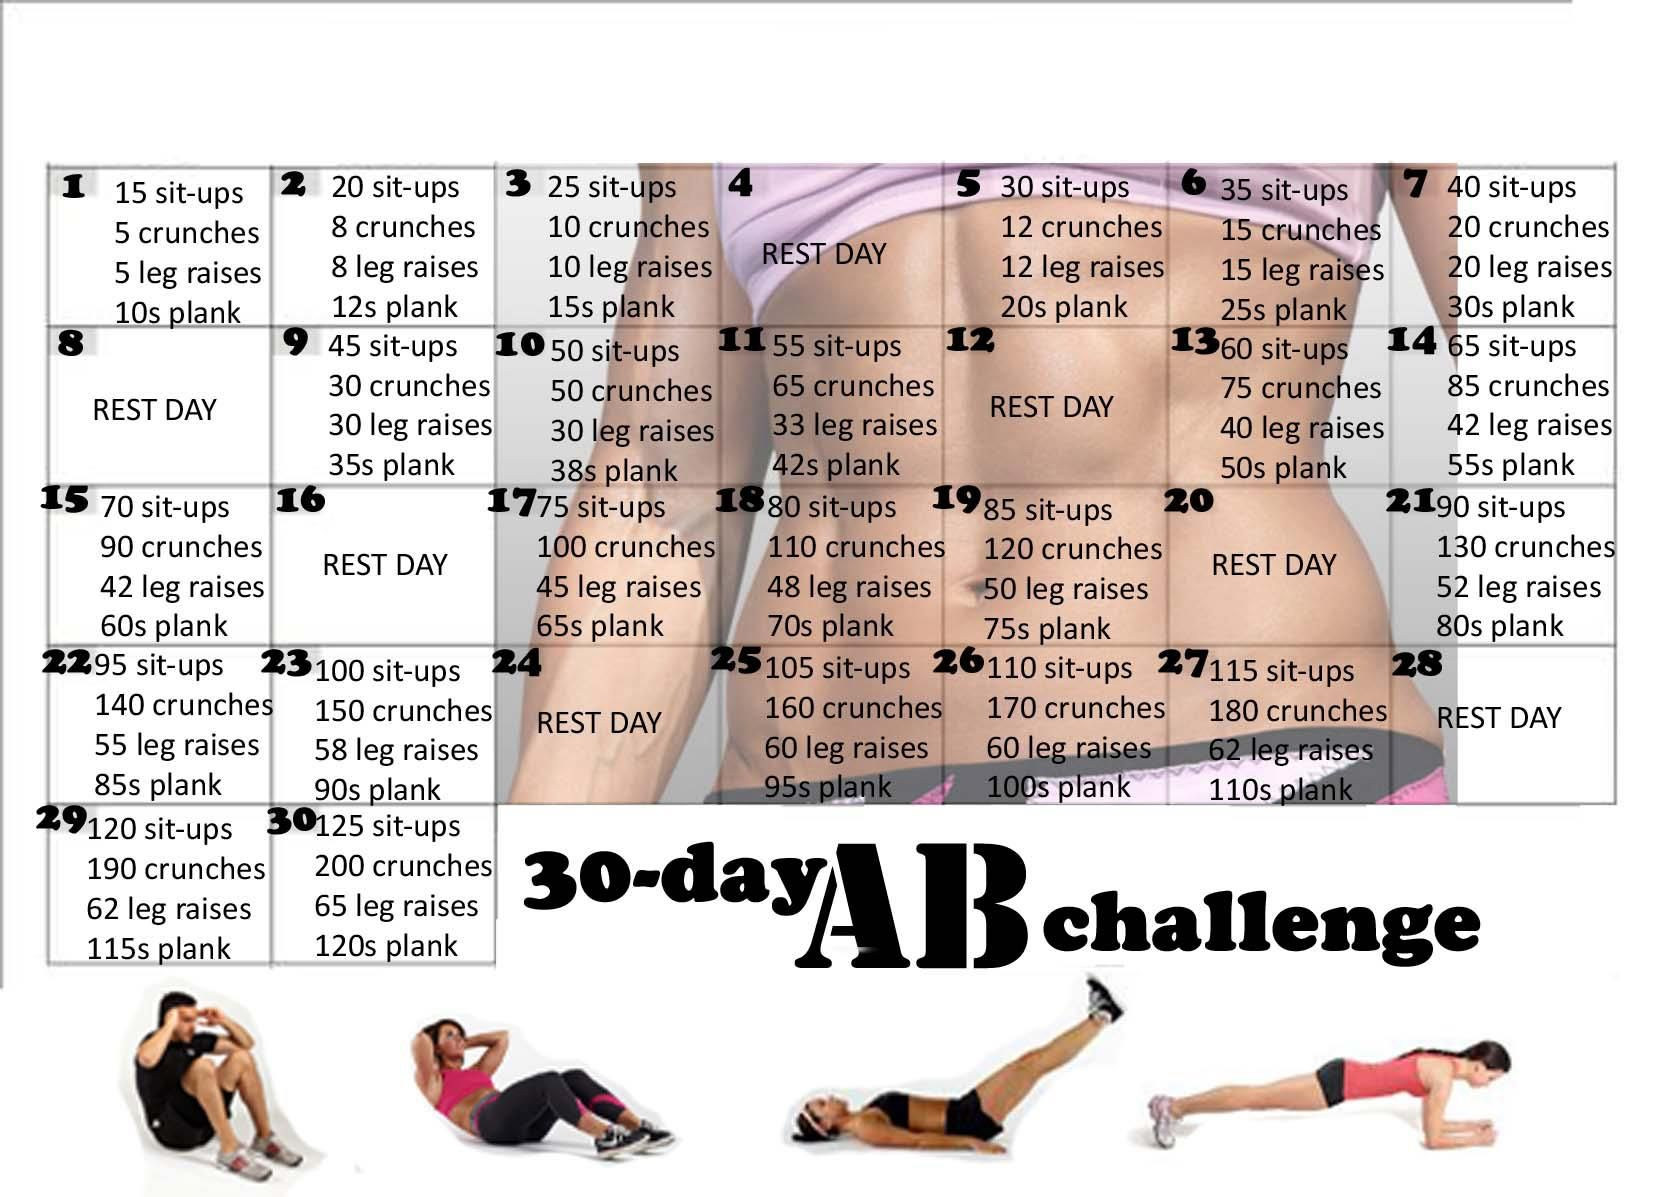 Last month I participated in the 30 Day Squat Challenge (which you can find here) which I rocked right up until Day 24 when I was hit with the flu and wasn't able to stand/walk/get out of bed/stop ...